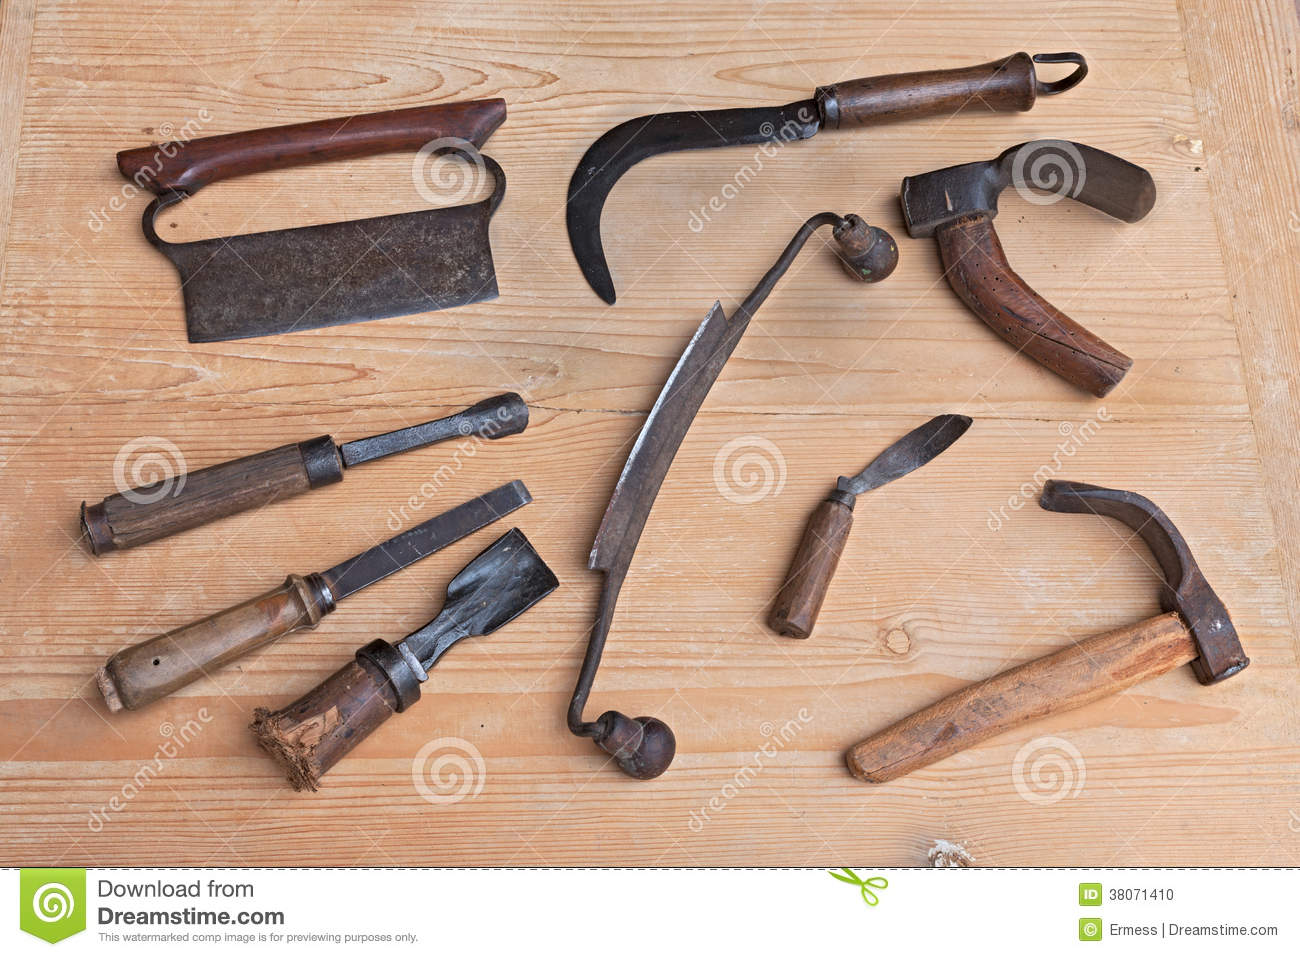 tools of carpentry for carving, smoothing or cutting wood - ancient ...